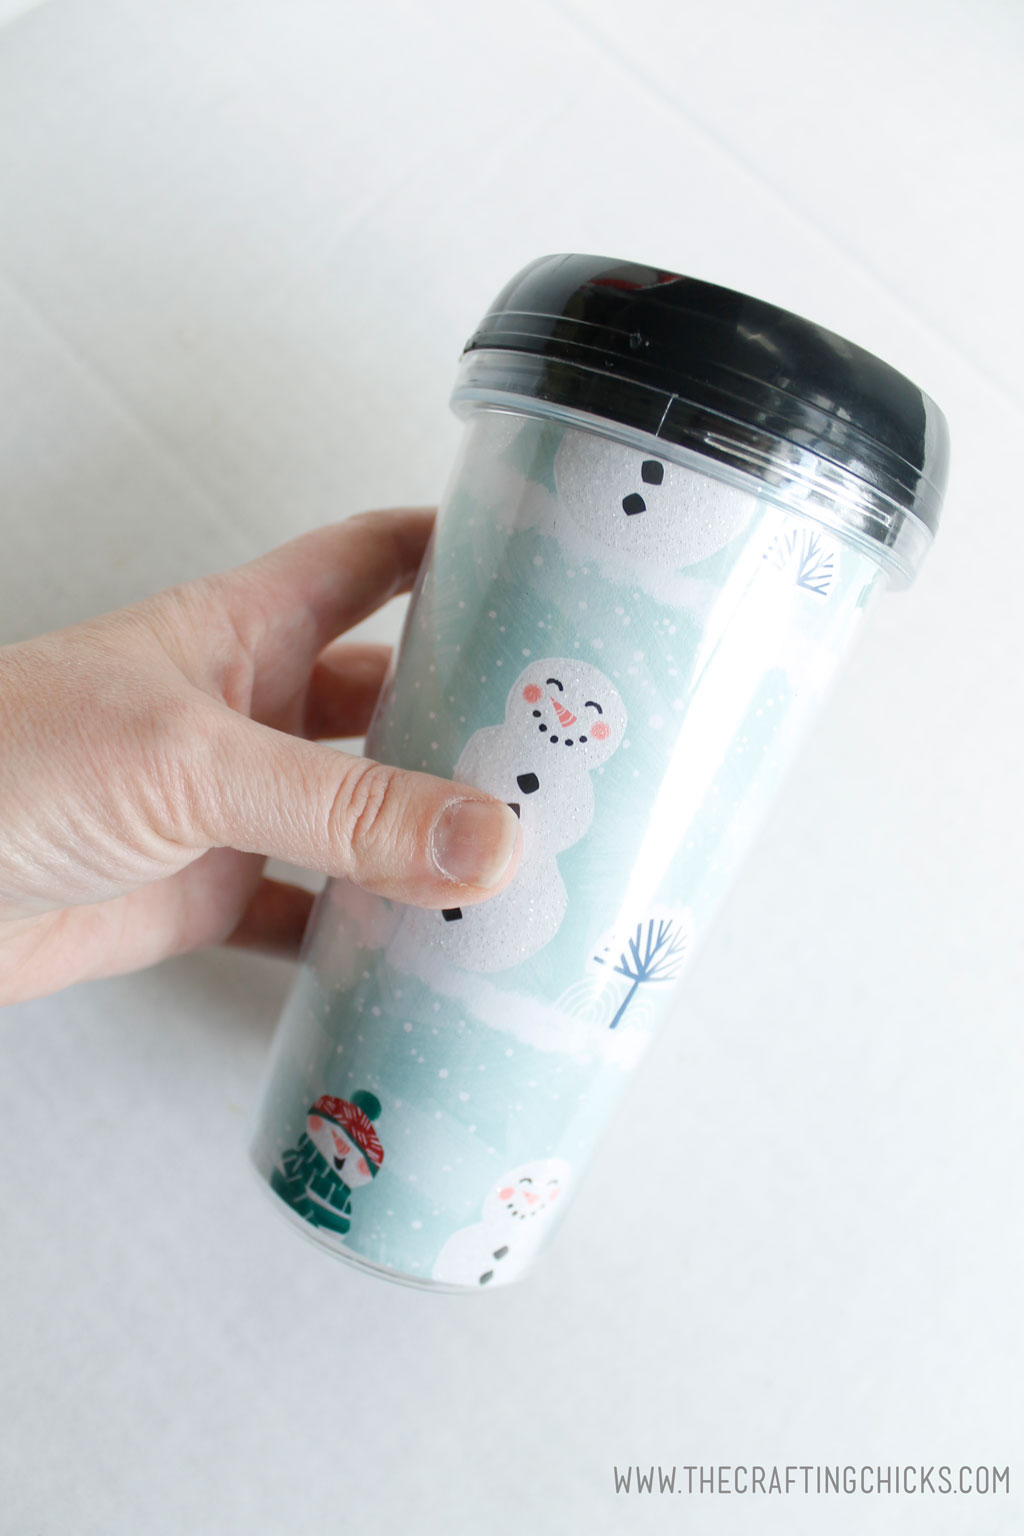 Place holiday paper inside DIY Mug for gift idea